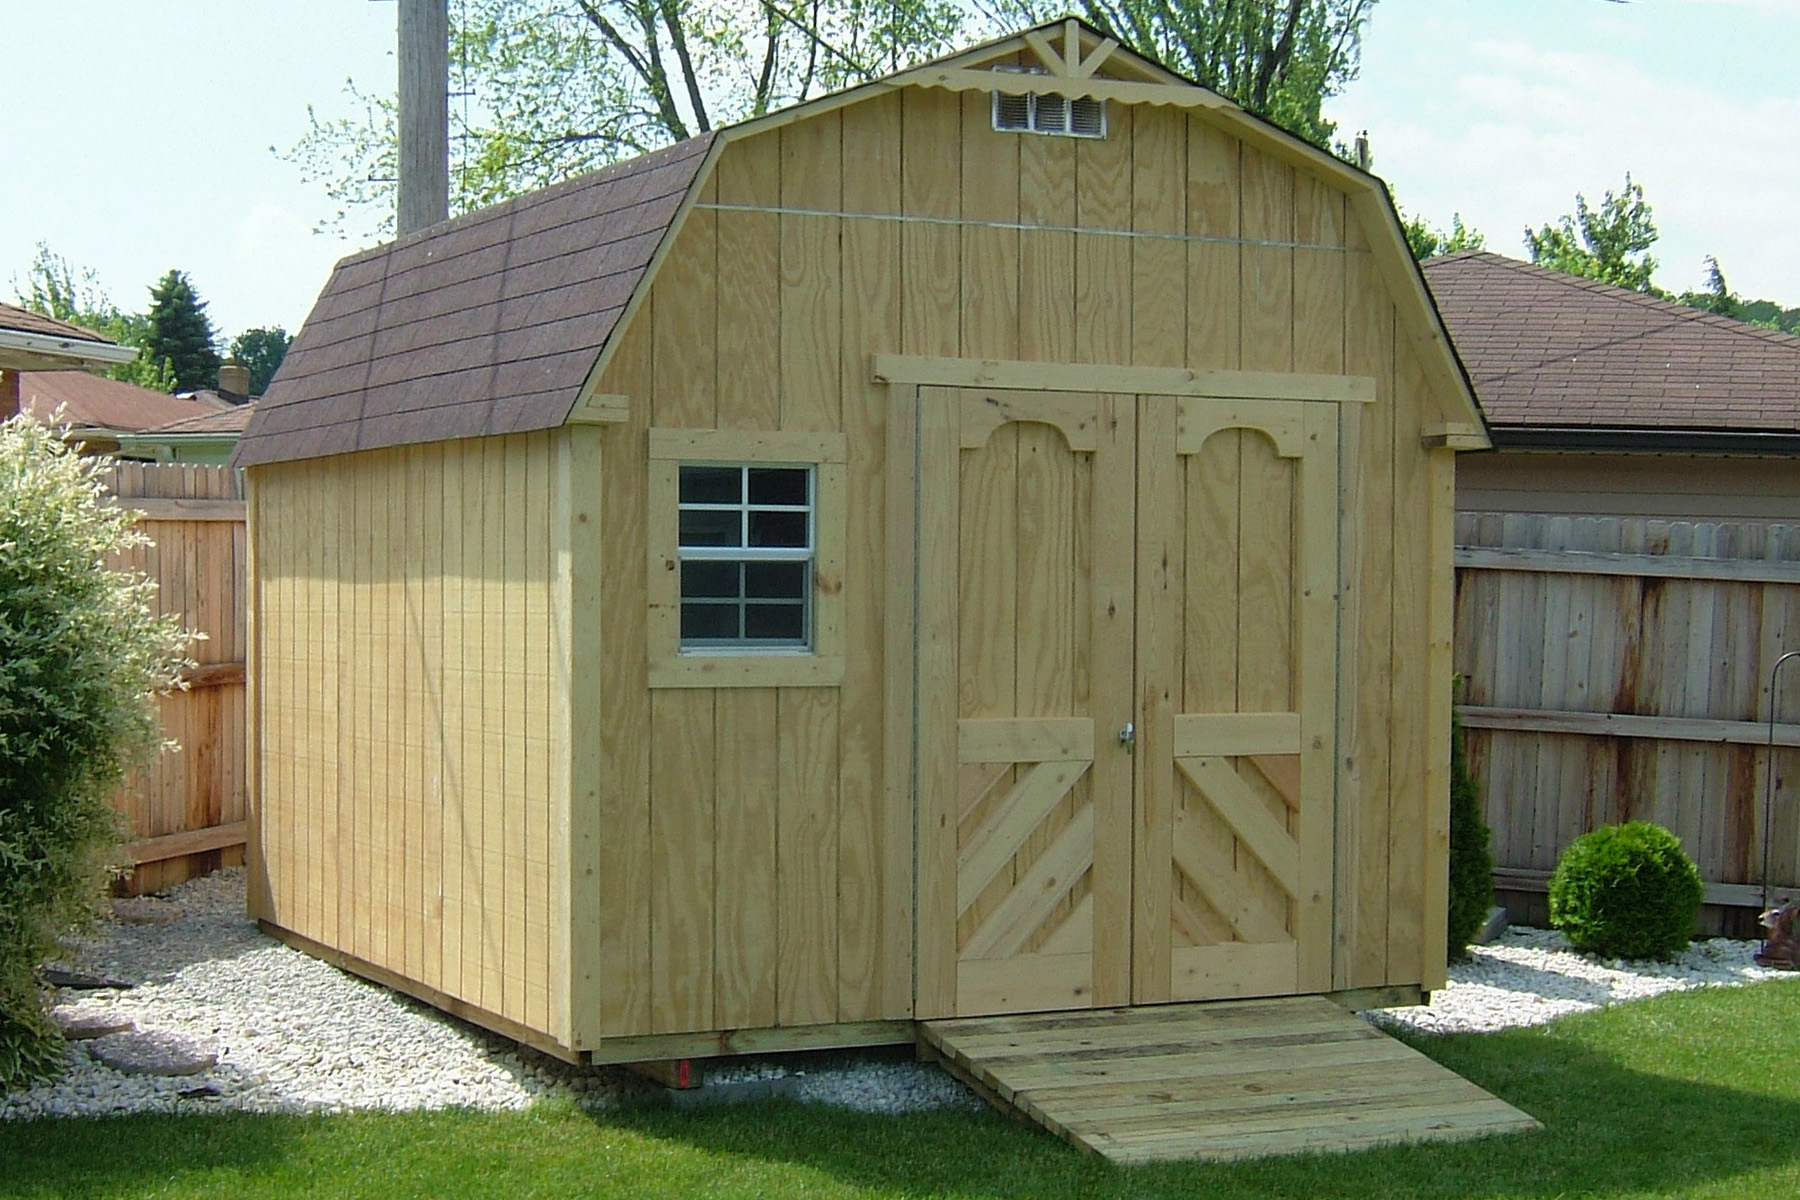 Best of 16 photos for sheds unlimited homes bistro 79599 for Sheds unlimited